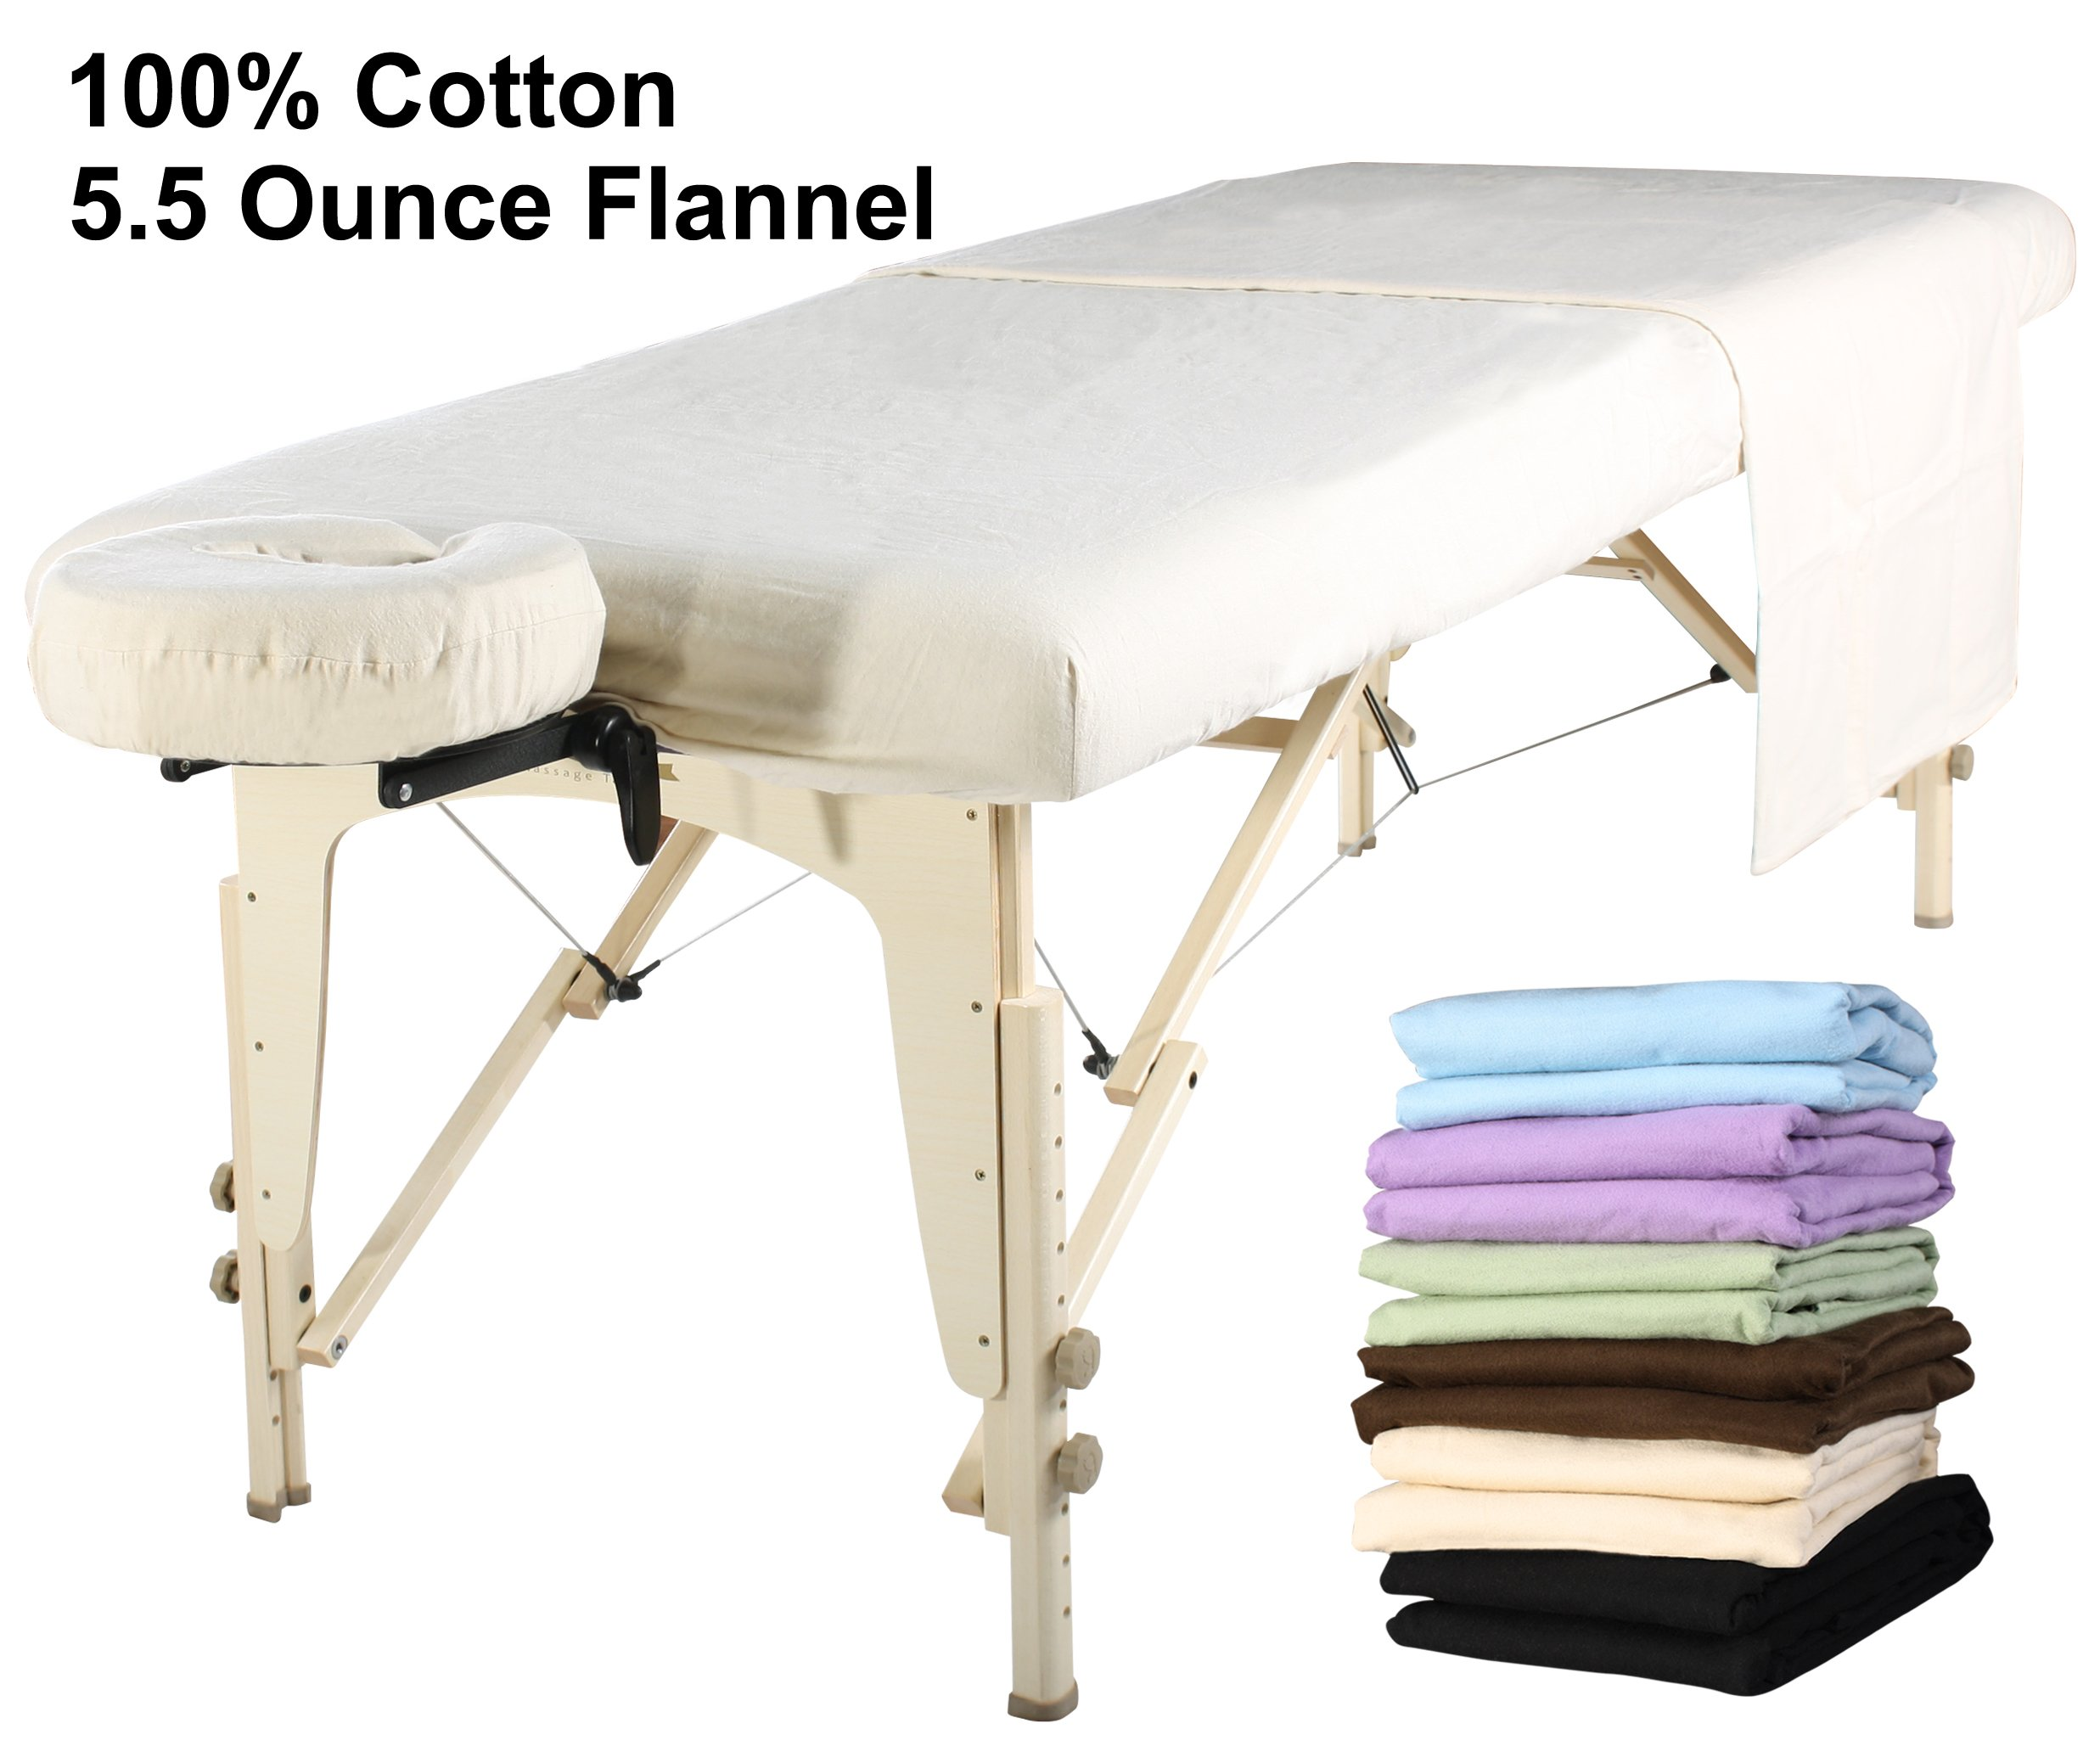 Master Massage Universal Massage Table Flannel Sheet Set 3 in 1 Table Cover, Face Cushion Cover, Table Sheet, Pure White by Mt Massage Tables